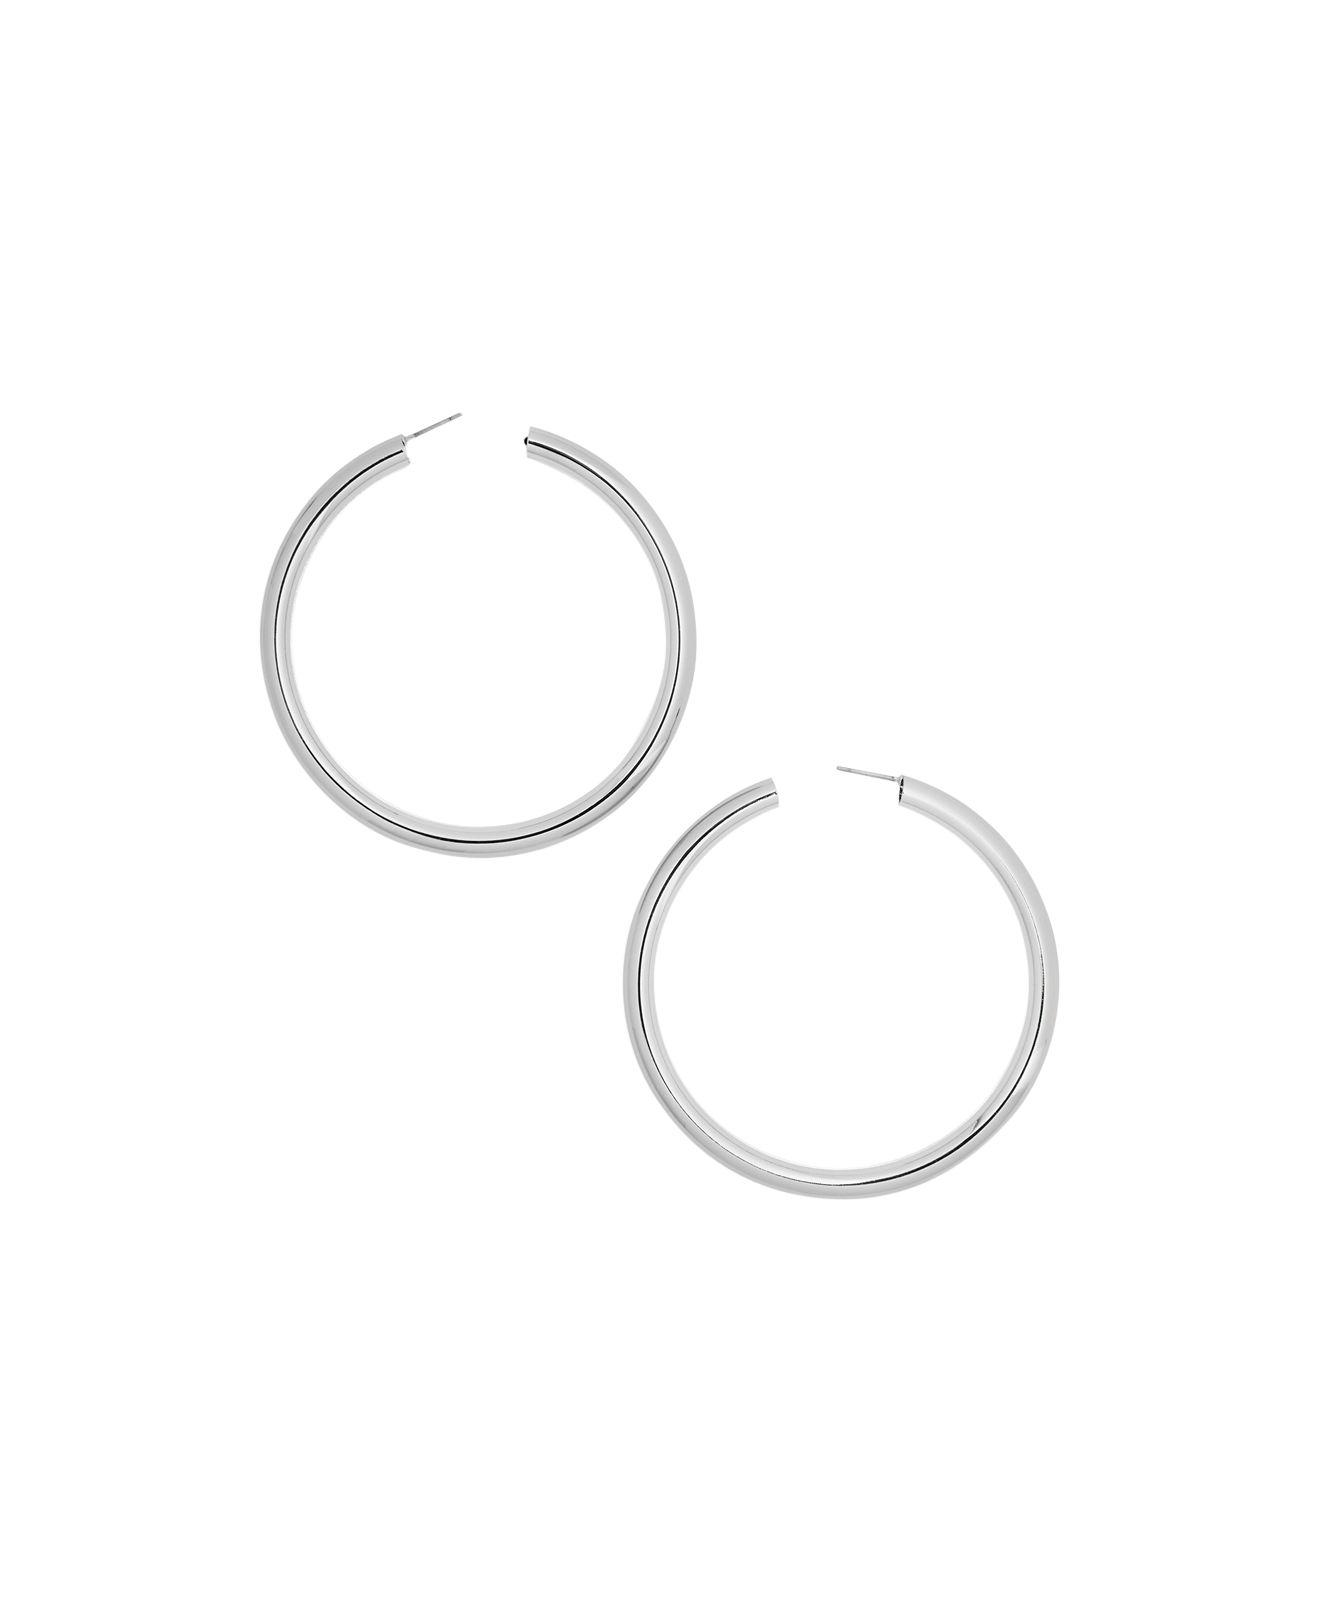 BaubleBar Penelope Hoop Earrings nVABCLdWc